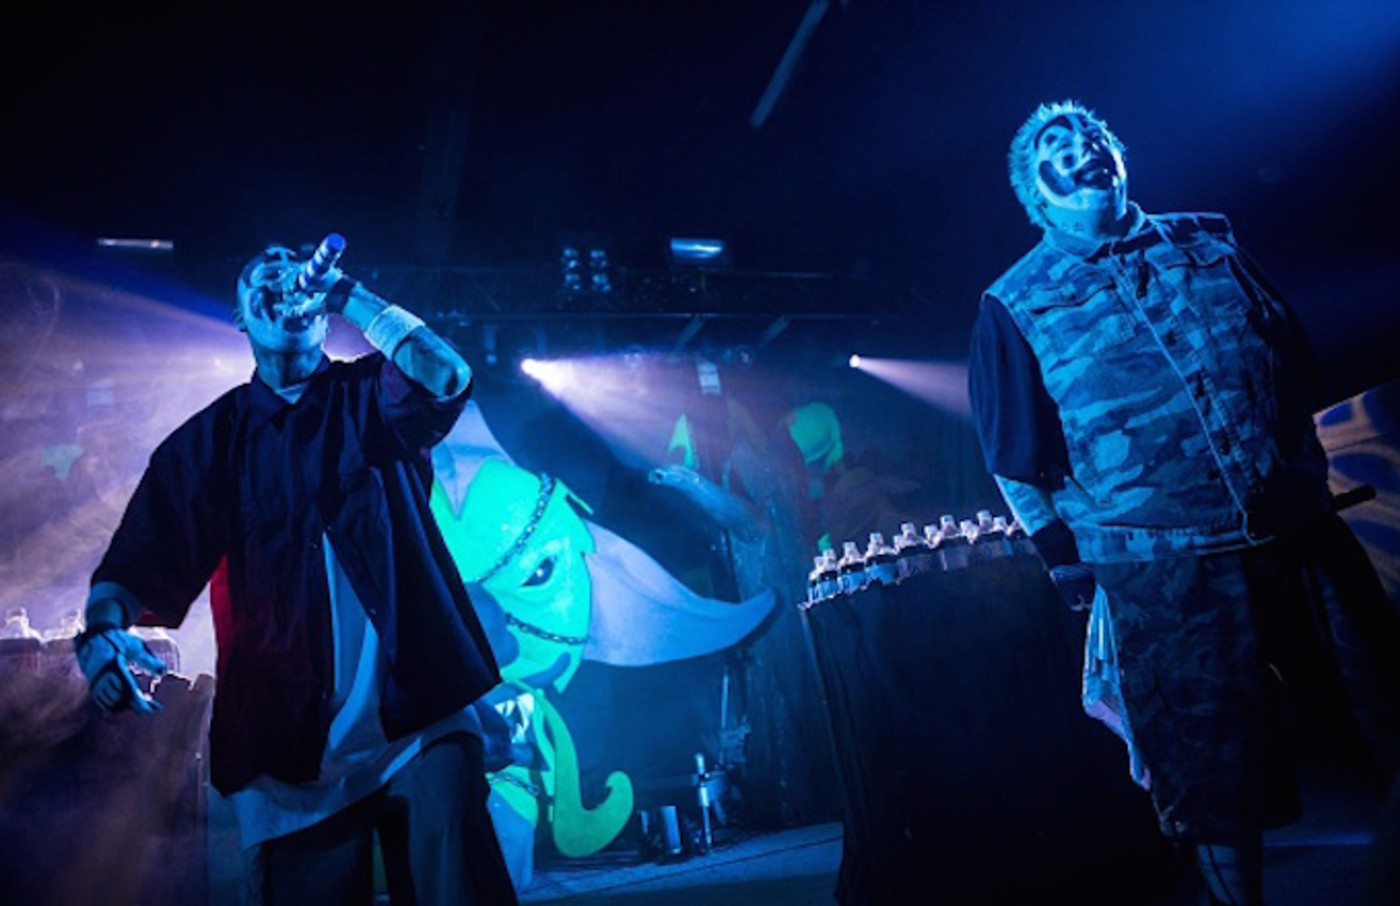 Insane Clown Posse performs in concert at The Pressroom